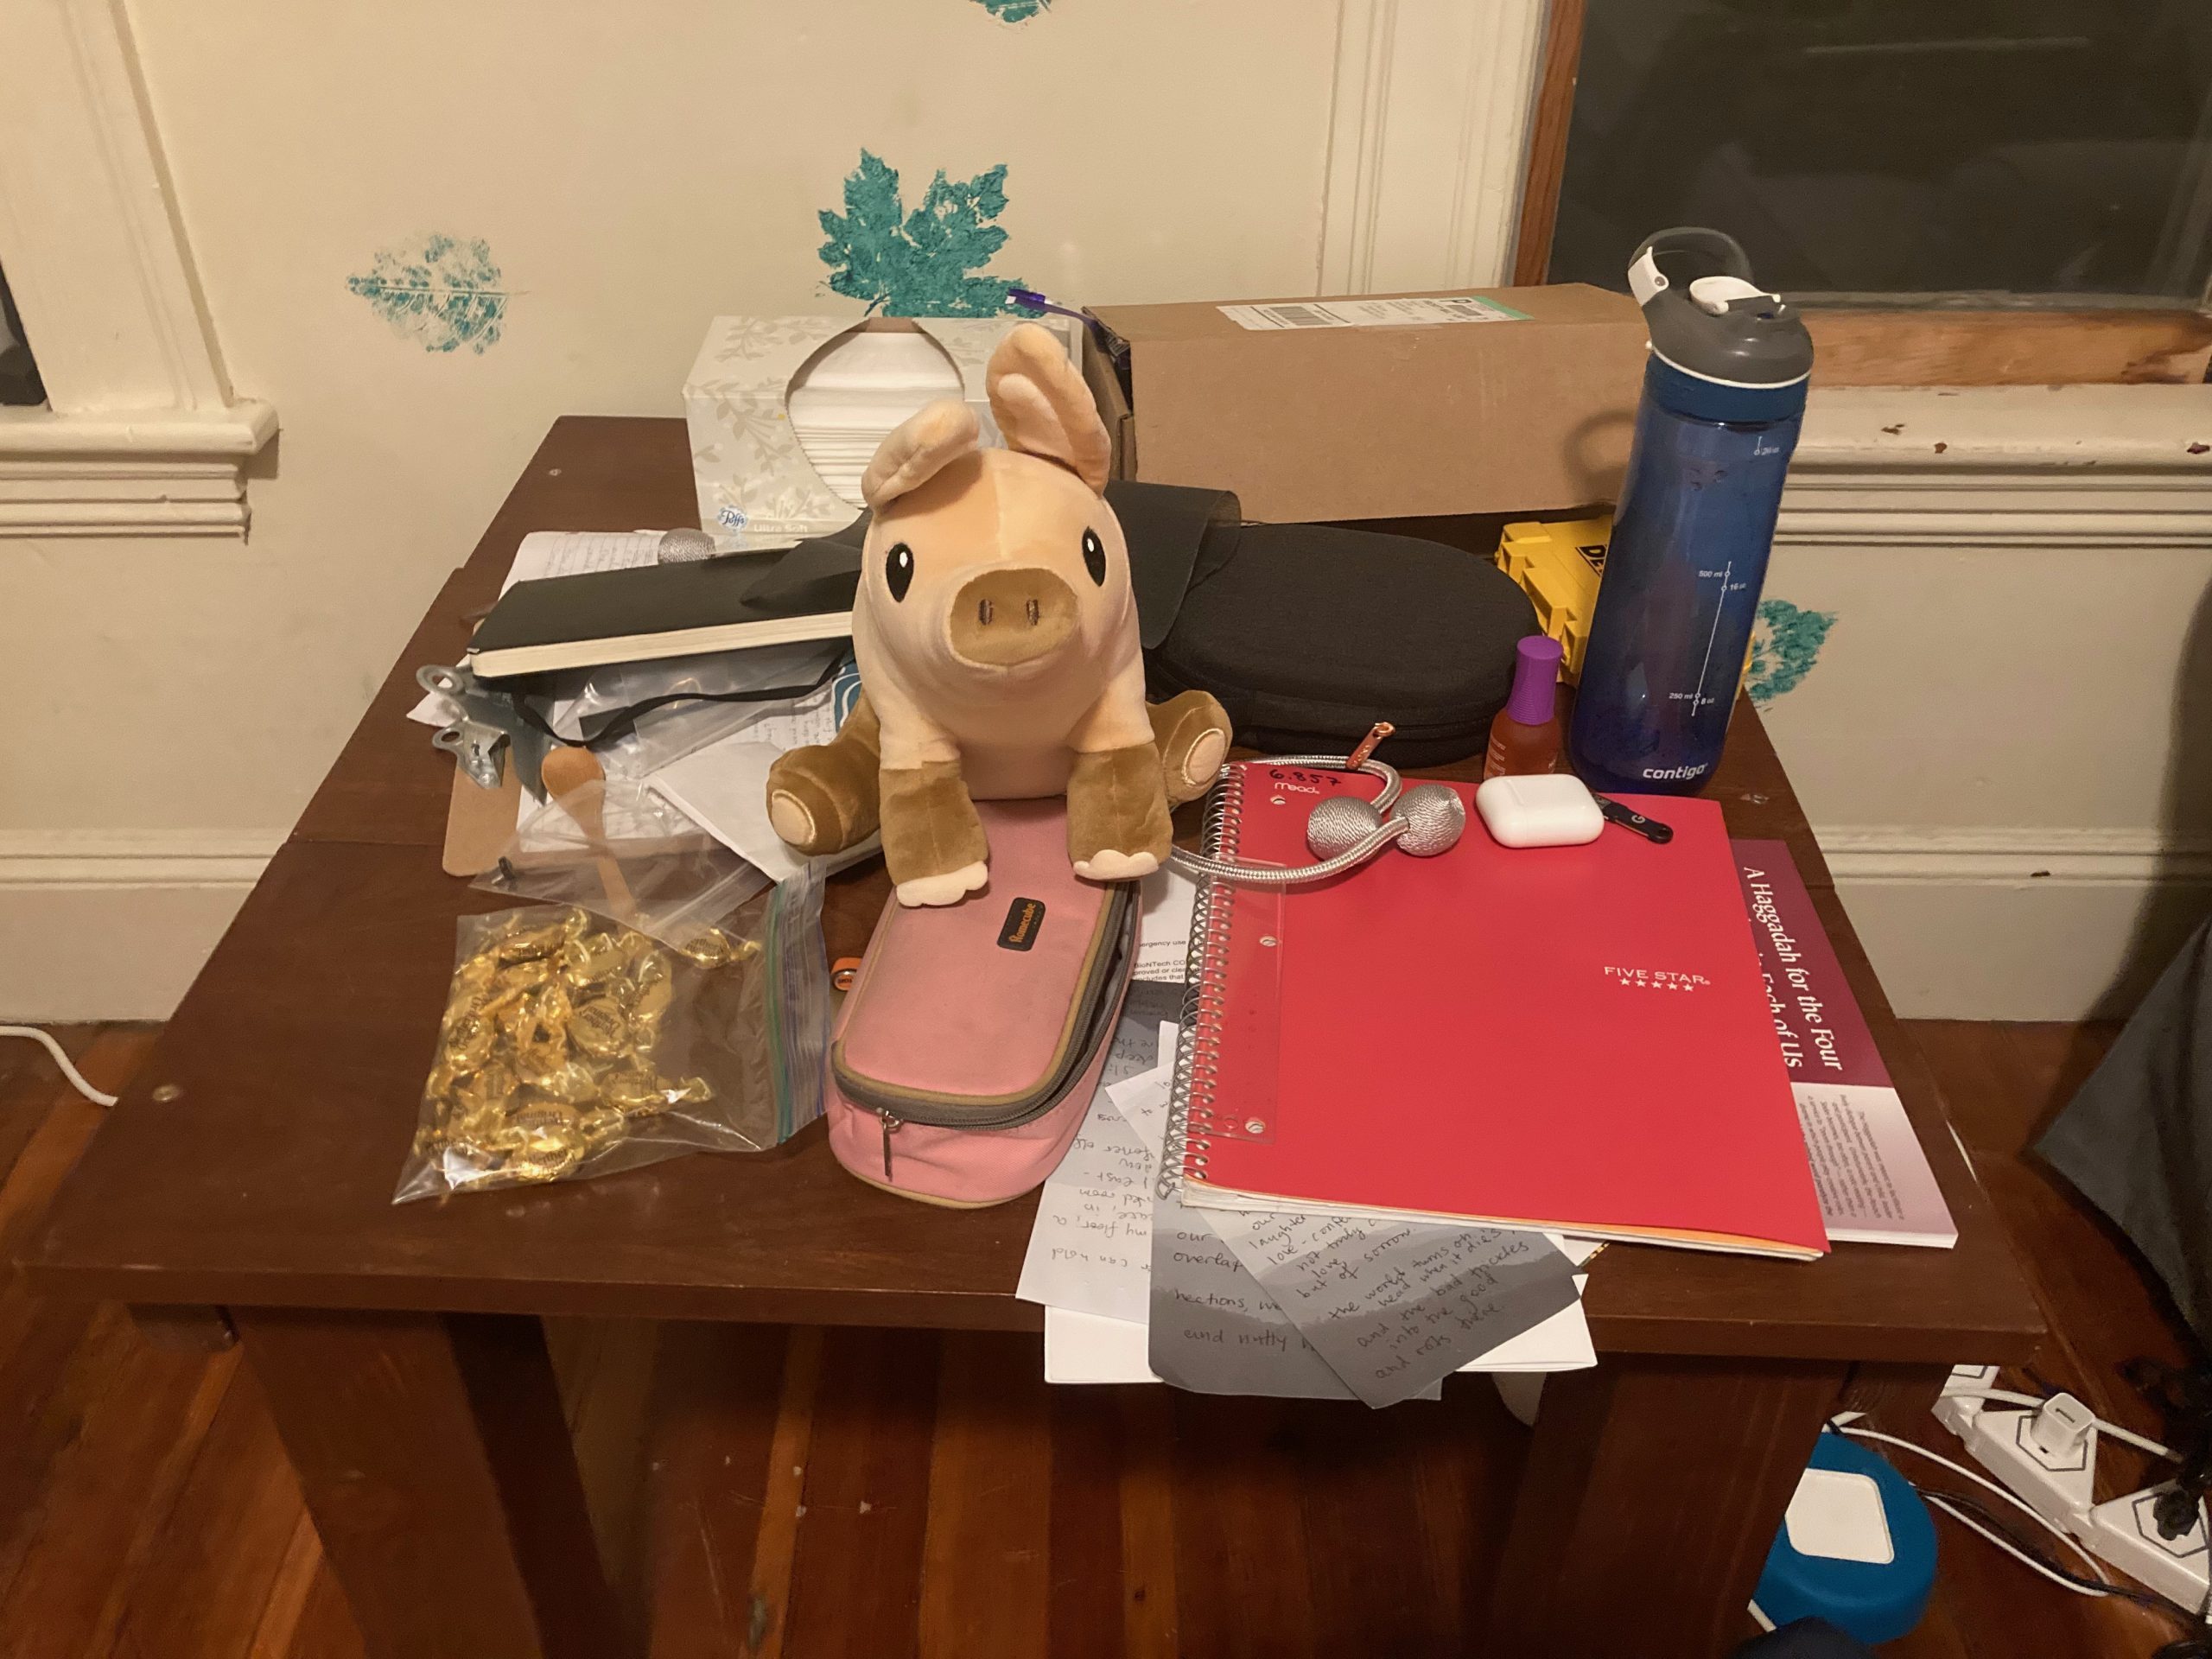 My coffee table absolutely covered in random stuff.